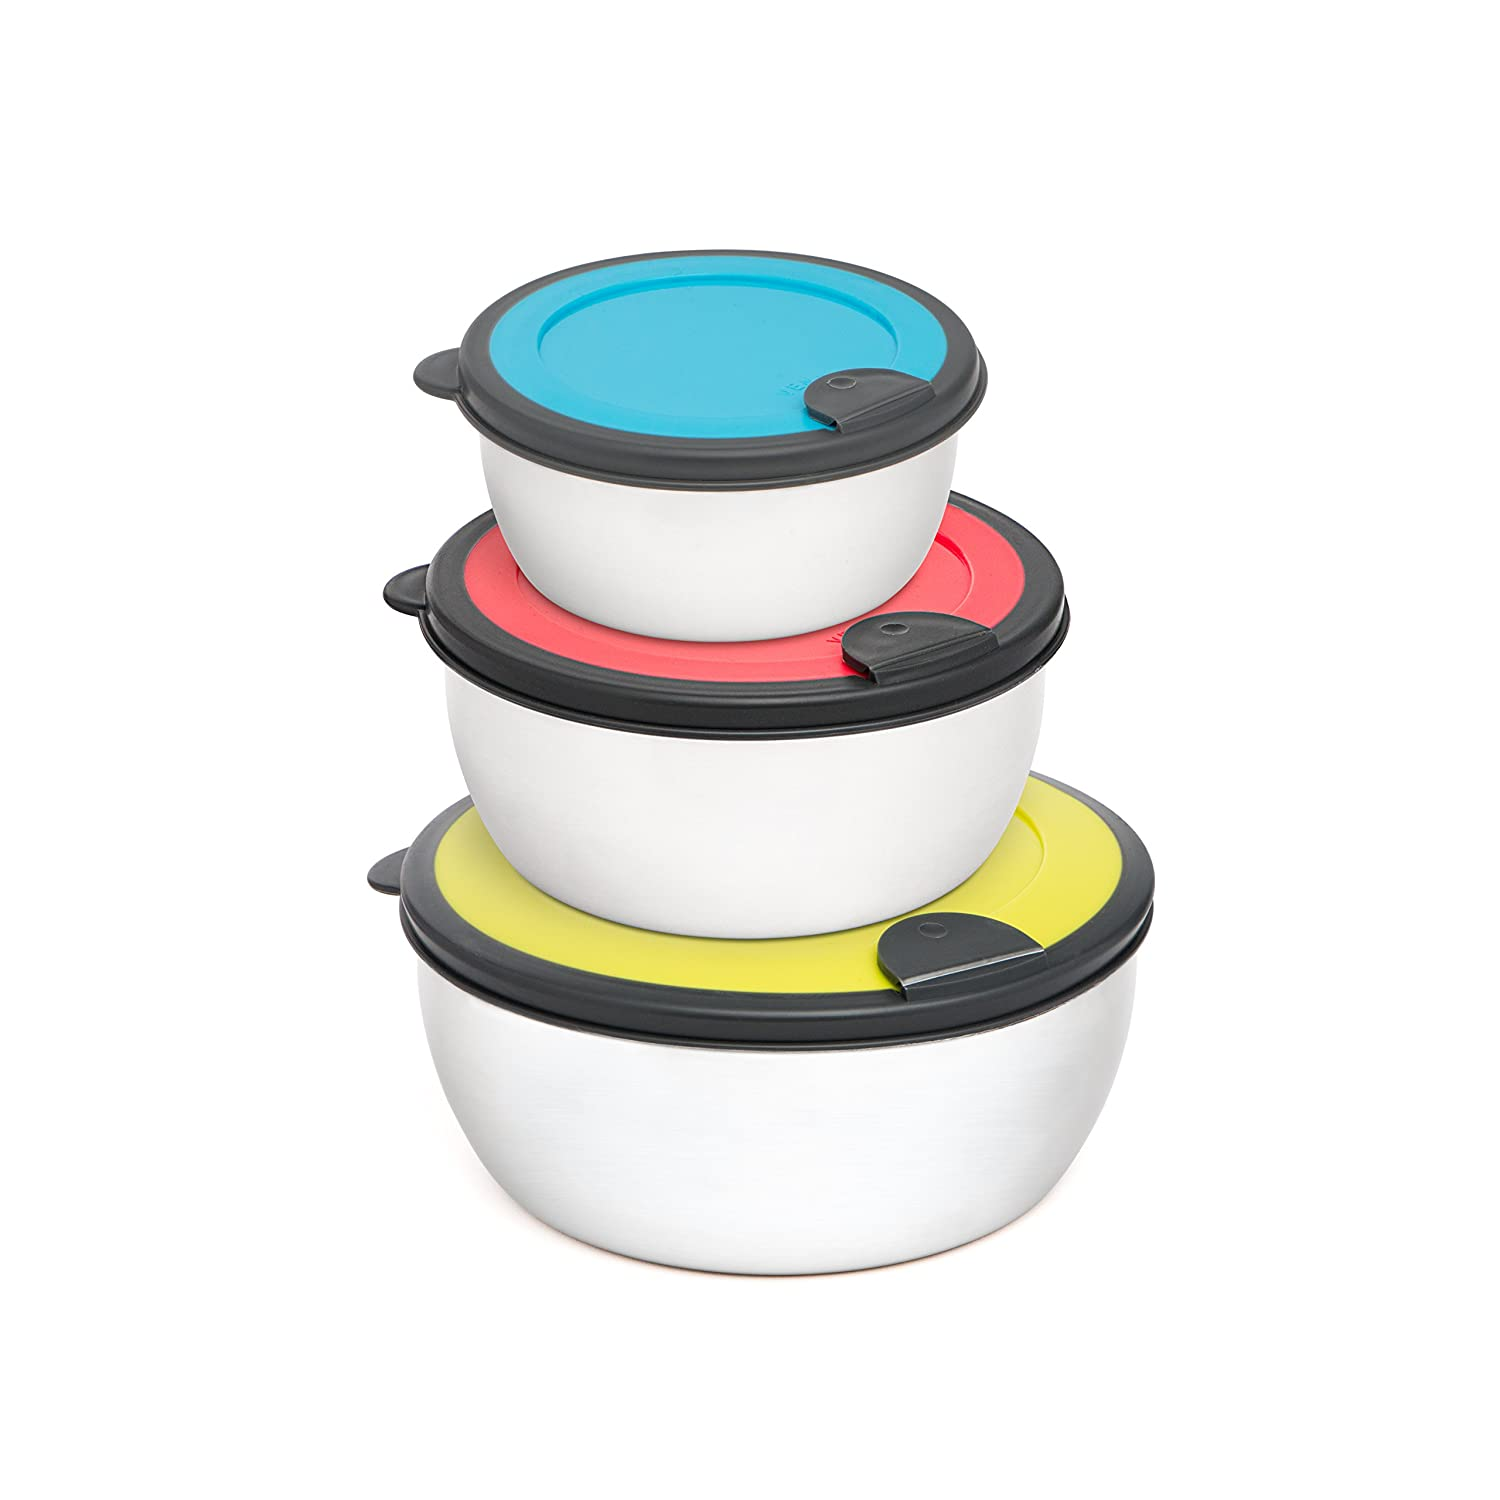 +Steel 18/8 Stainless Steel Food Container Set of 3, Nesting Leak Proof Food Storage Set with lids BPA Free